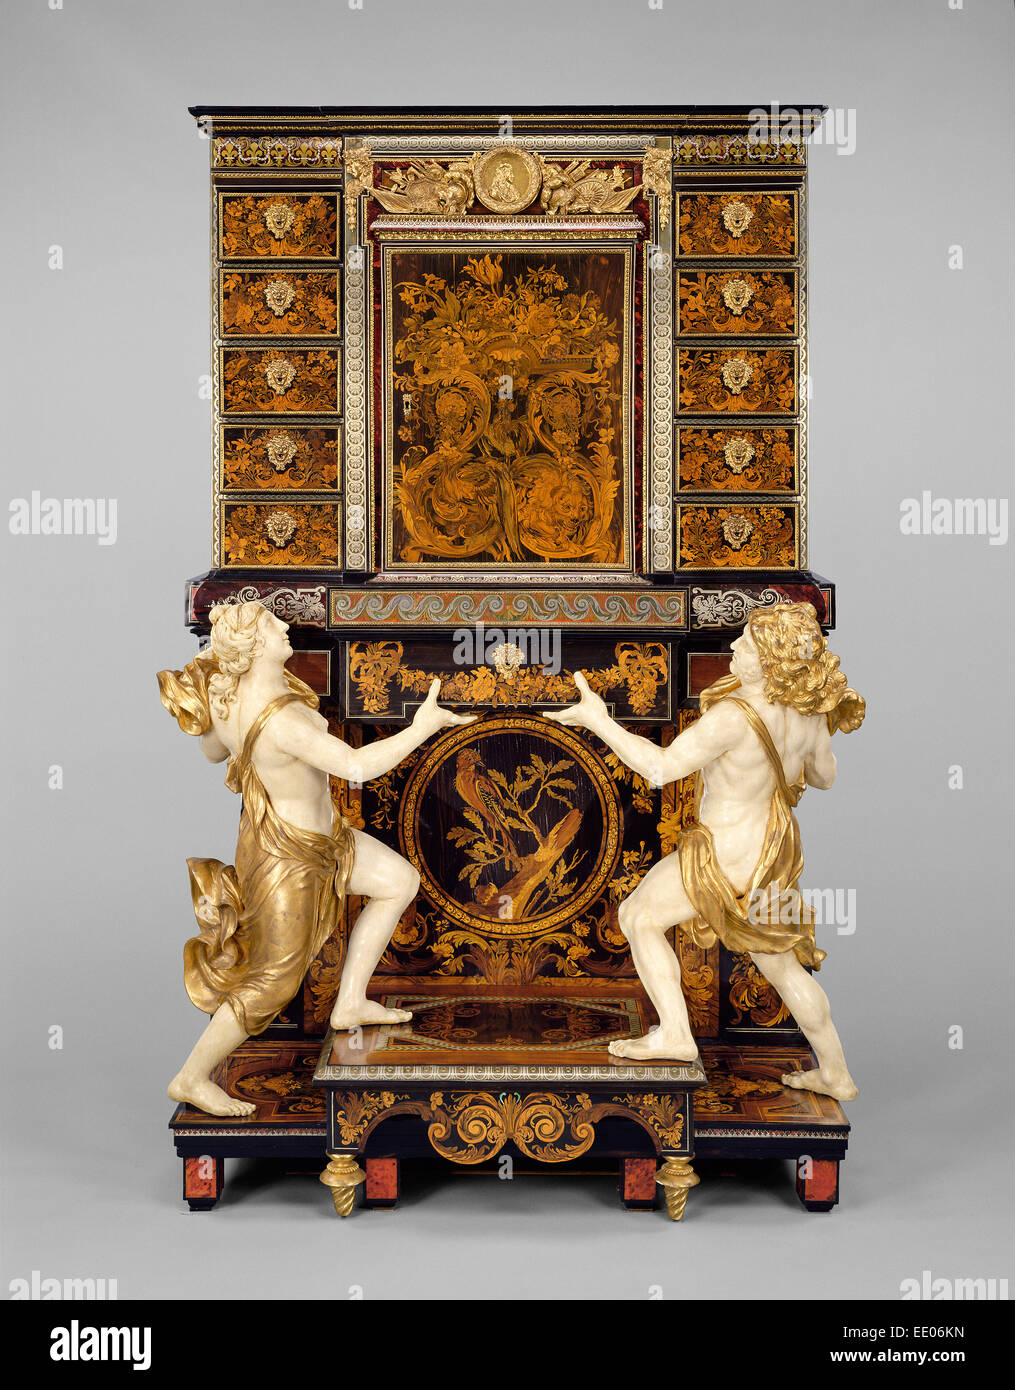 Cabinet on Stand; Attributed to André-Charles Boulle, French, 1642 - 1732, master before 1666, and medallions - Stock Image